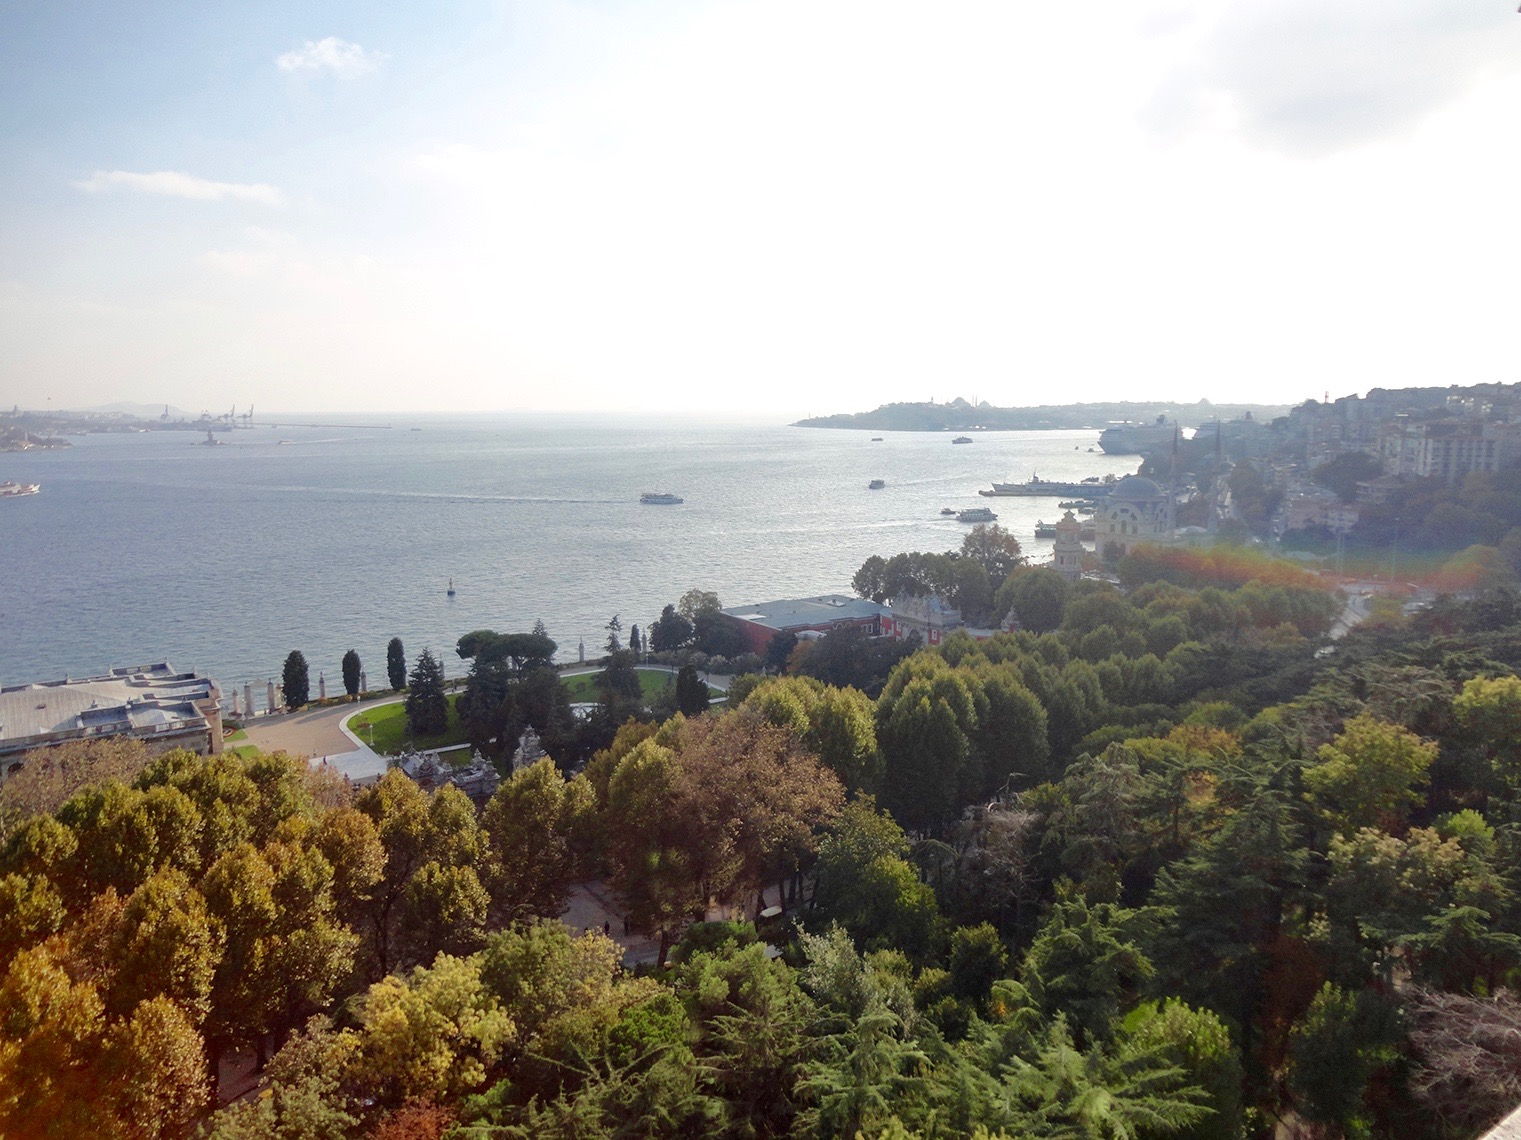 Bosphorus and city parks Istanbul Turkey from above